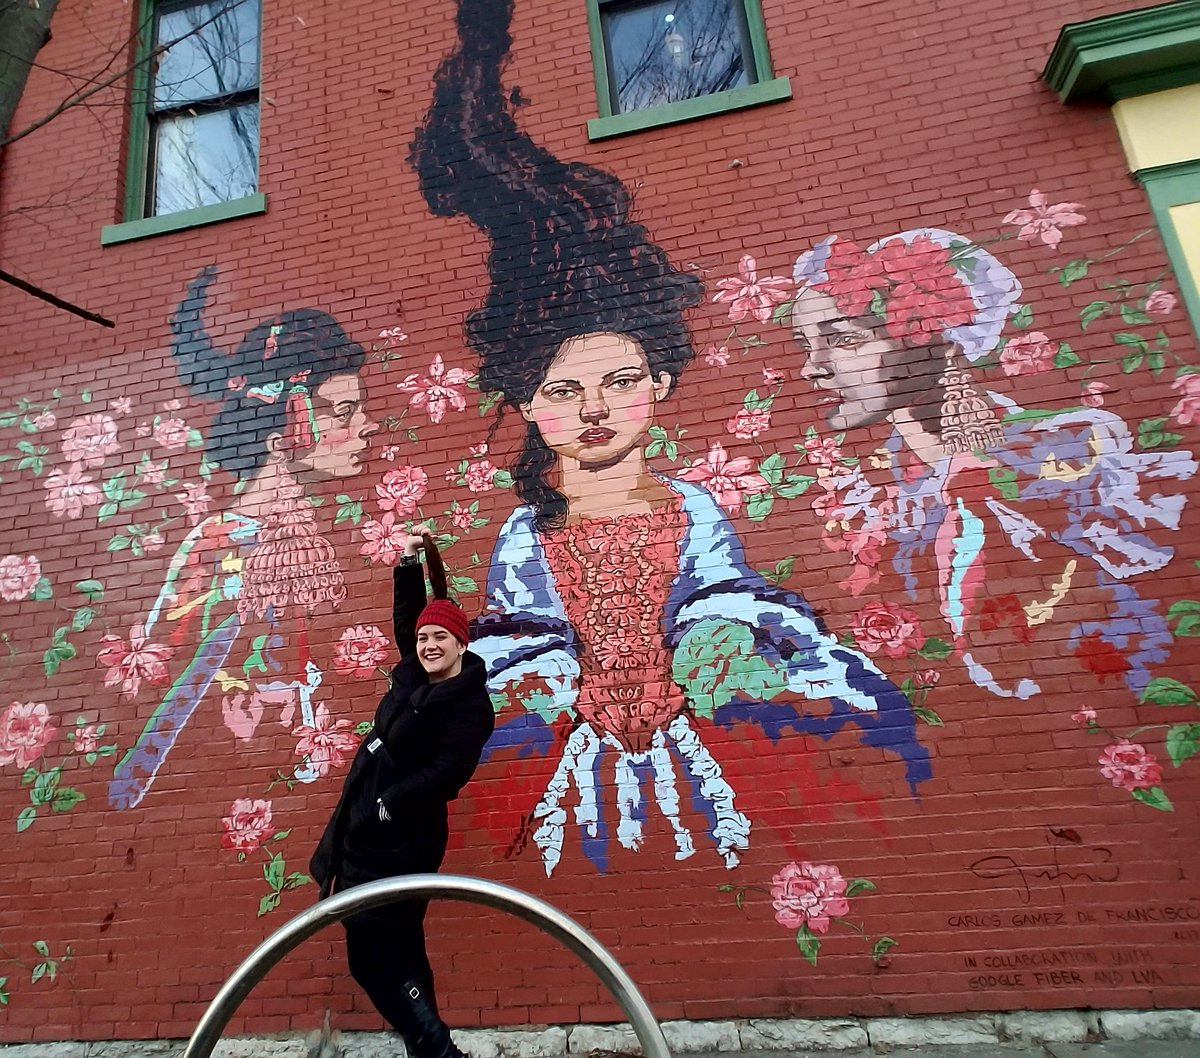 "LVA was thrilled recently to discover that  Amanda James , an Assistant Director of Young Alumni & Student Philanthropy at the University of Louisville and self-described ""wall crawler"" (mural fan!) ended her 2017 by visiting the  trio of murals  LVA & Google Fiber helped bring to life for artists Carrie Donovan, Liz Richter and Carlos Gamez de Francisco.  She credits her friend Josephine Lee for introducing her to the murals and said of them, ""I absolutely love these additions to Louisville!"" We do, too, Amanda! Thank you for these wonderful photos."